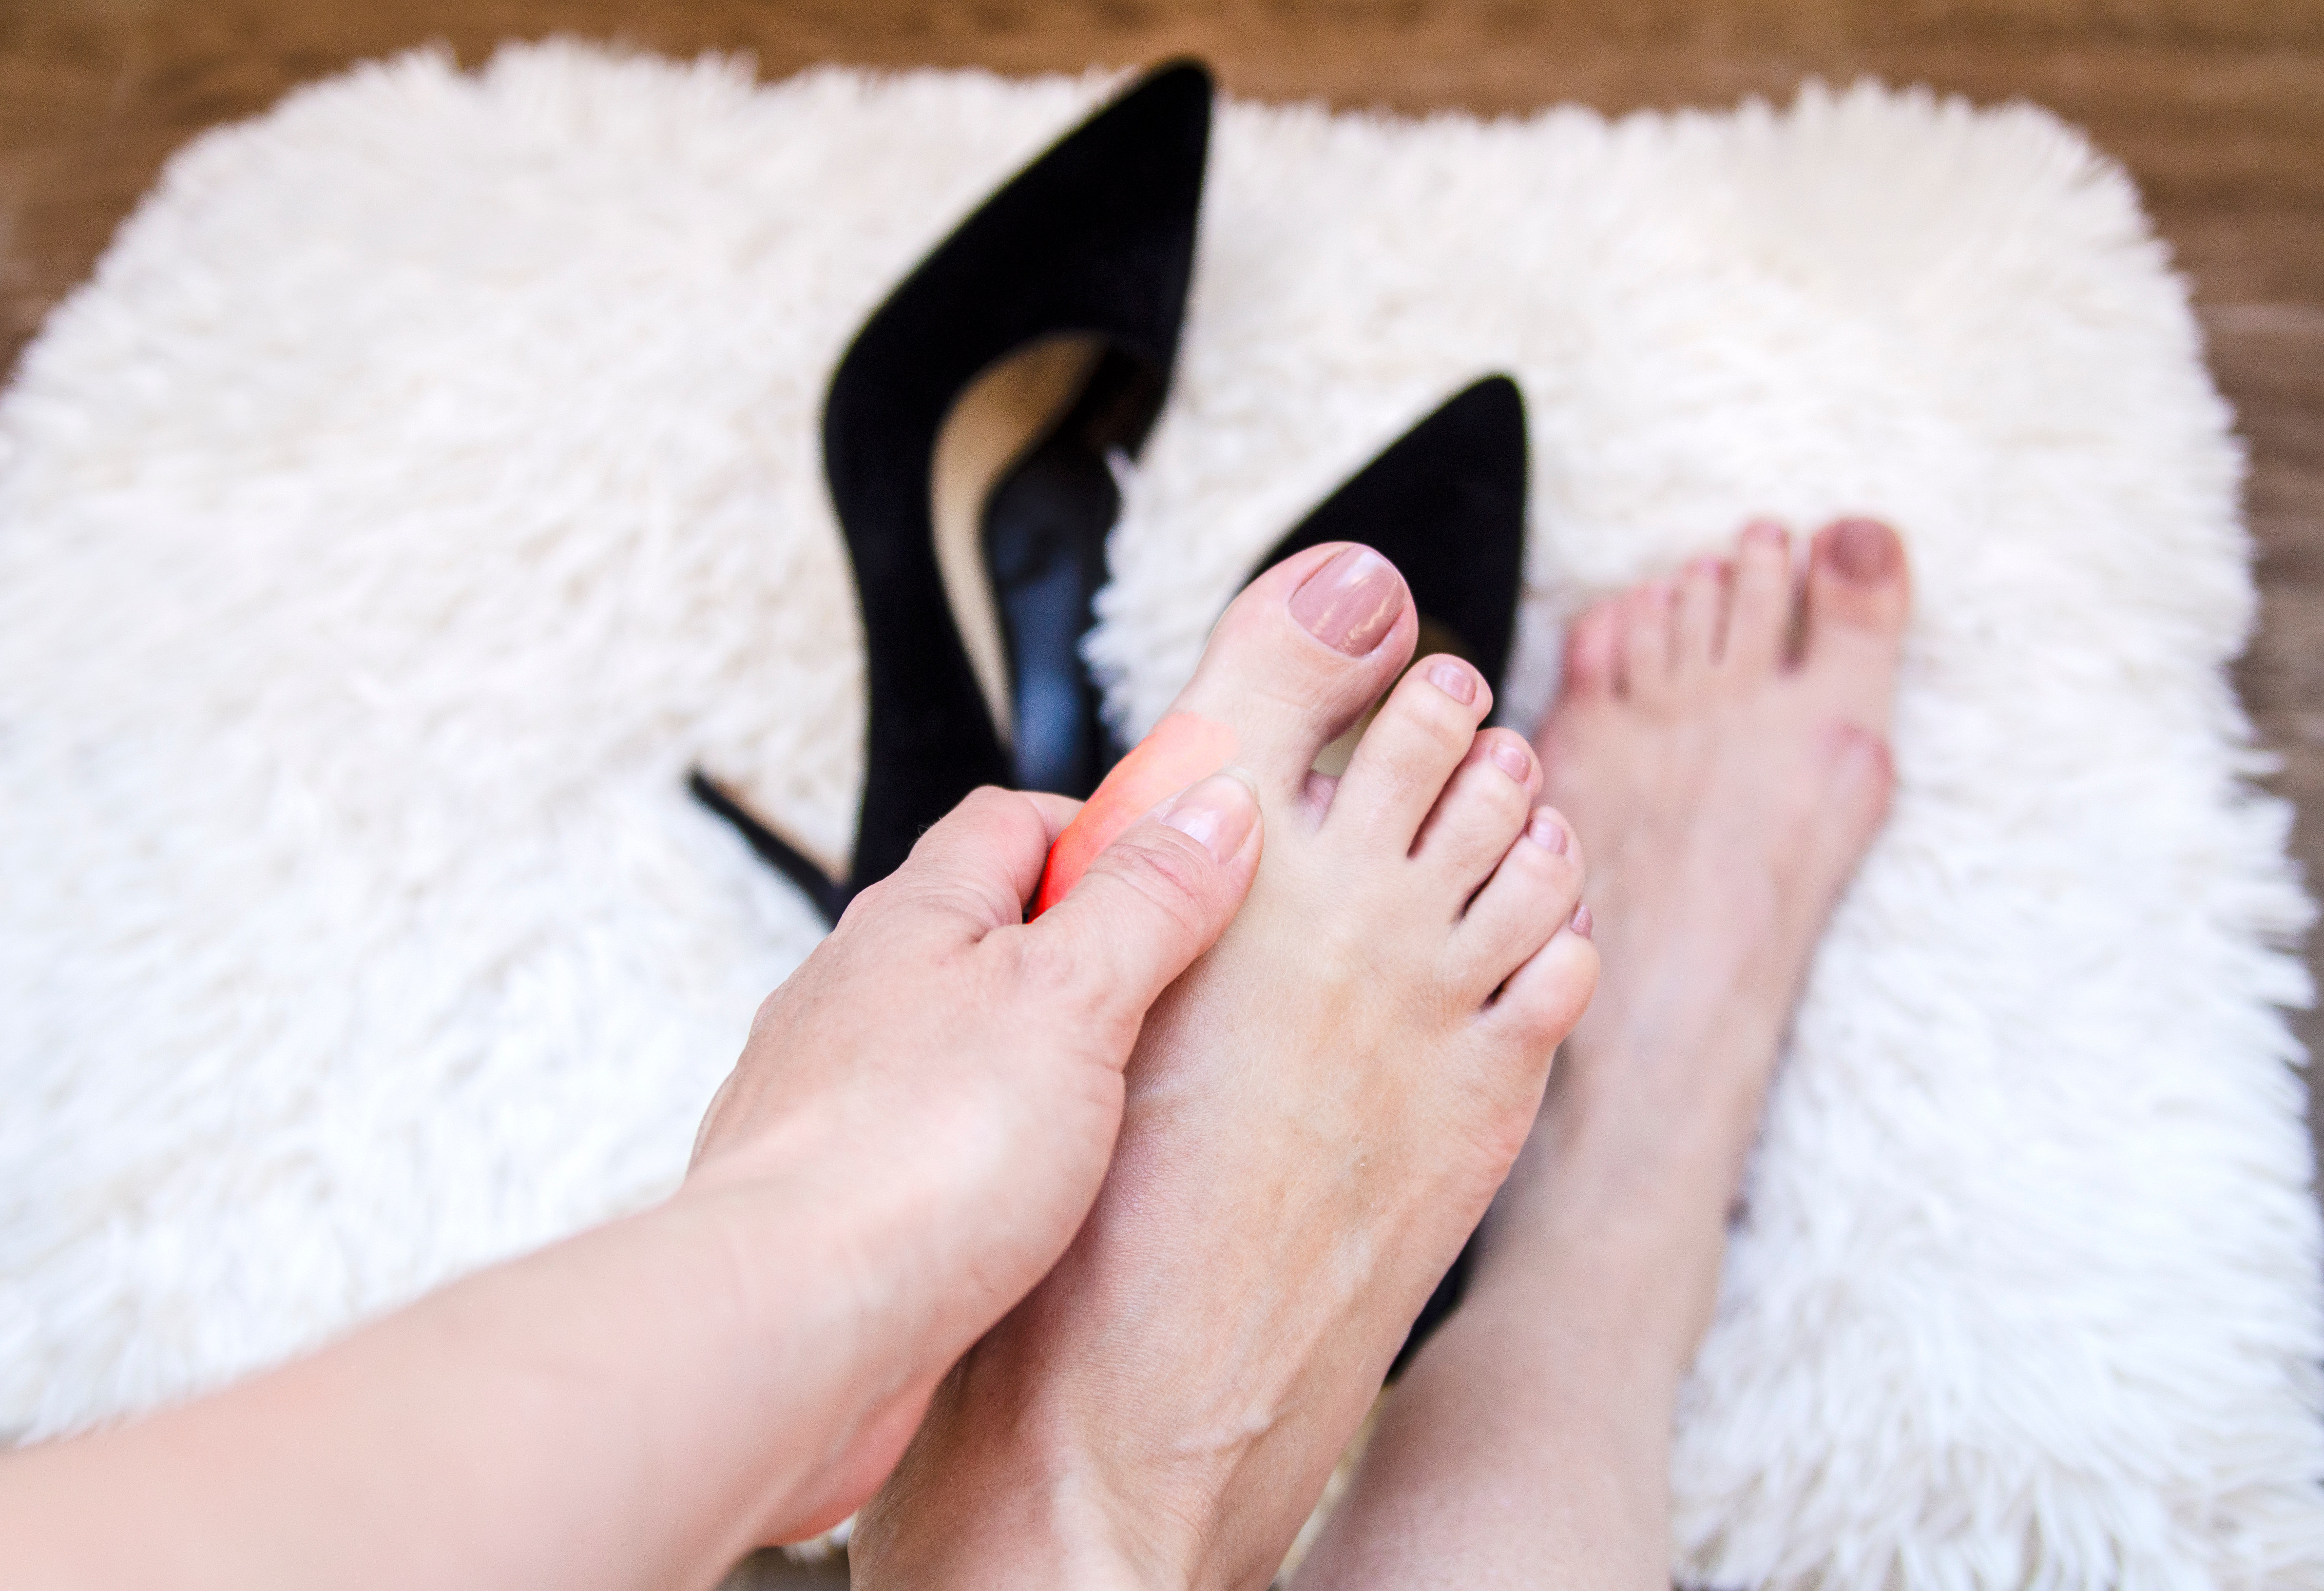 Women suffer with bunion pain due to wearing high heels